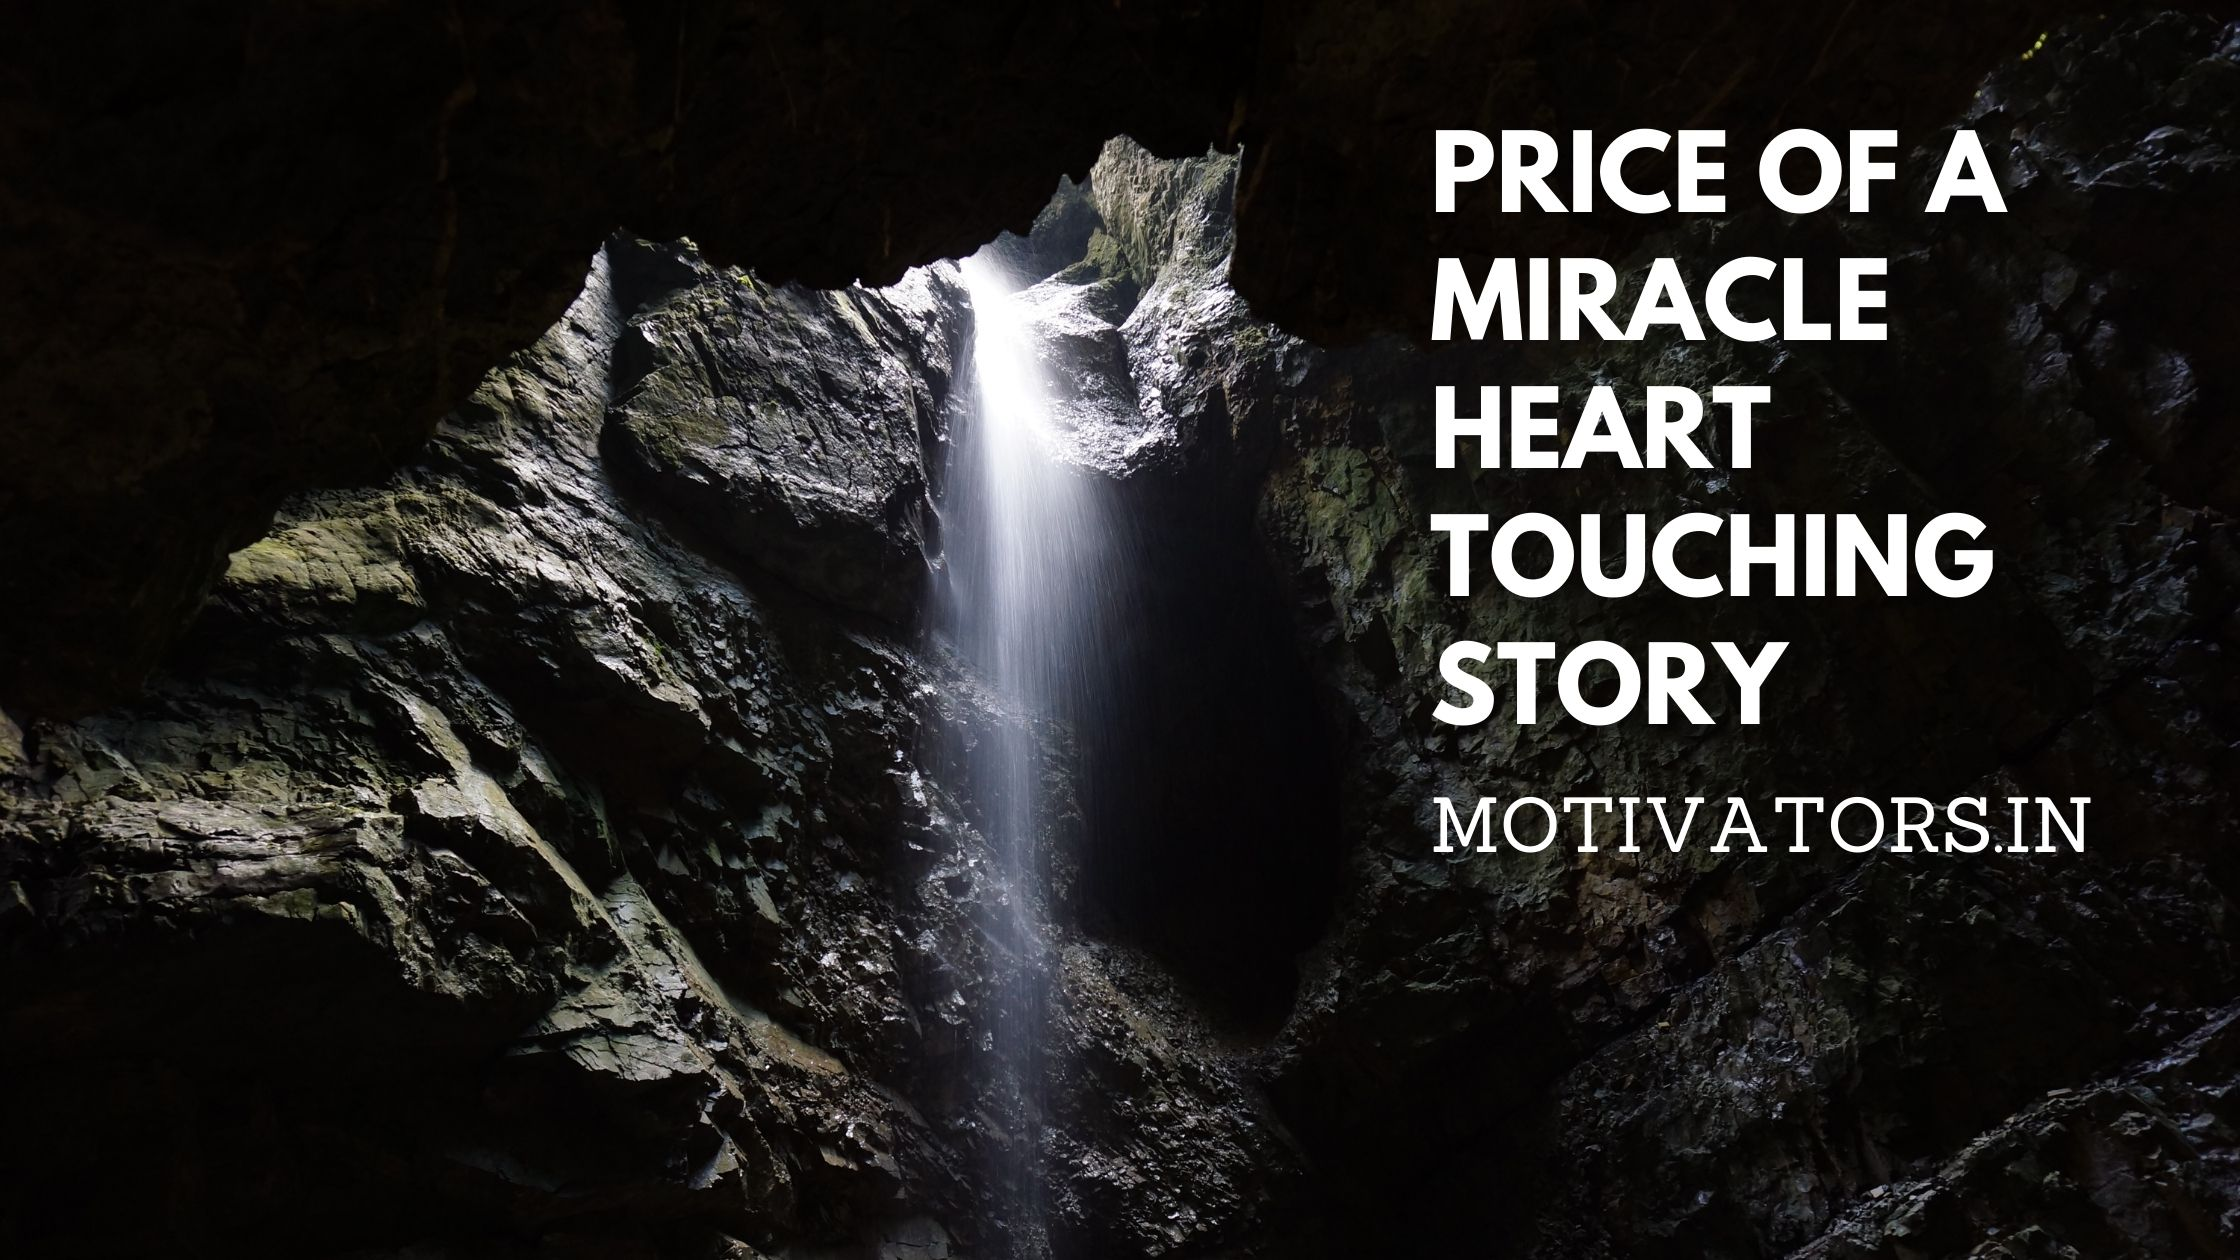 Price Of A Miracle